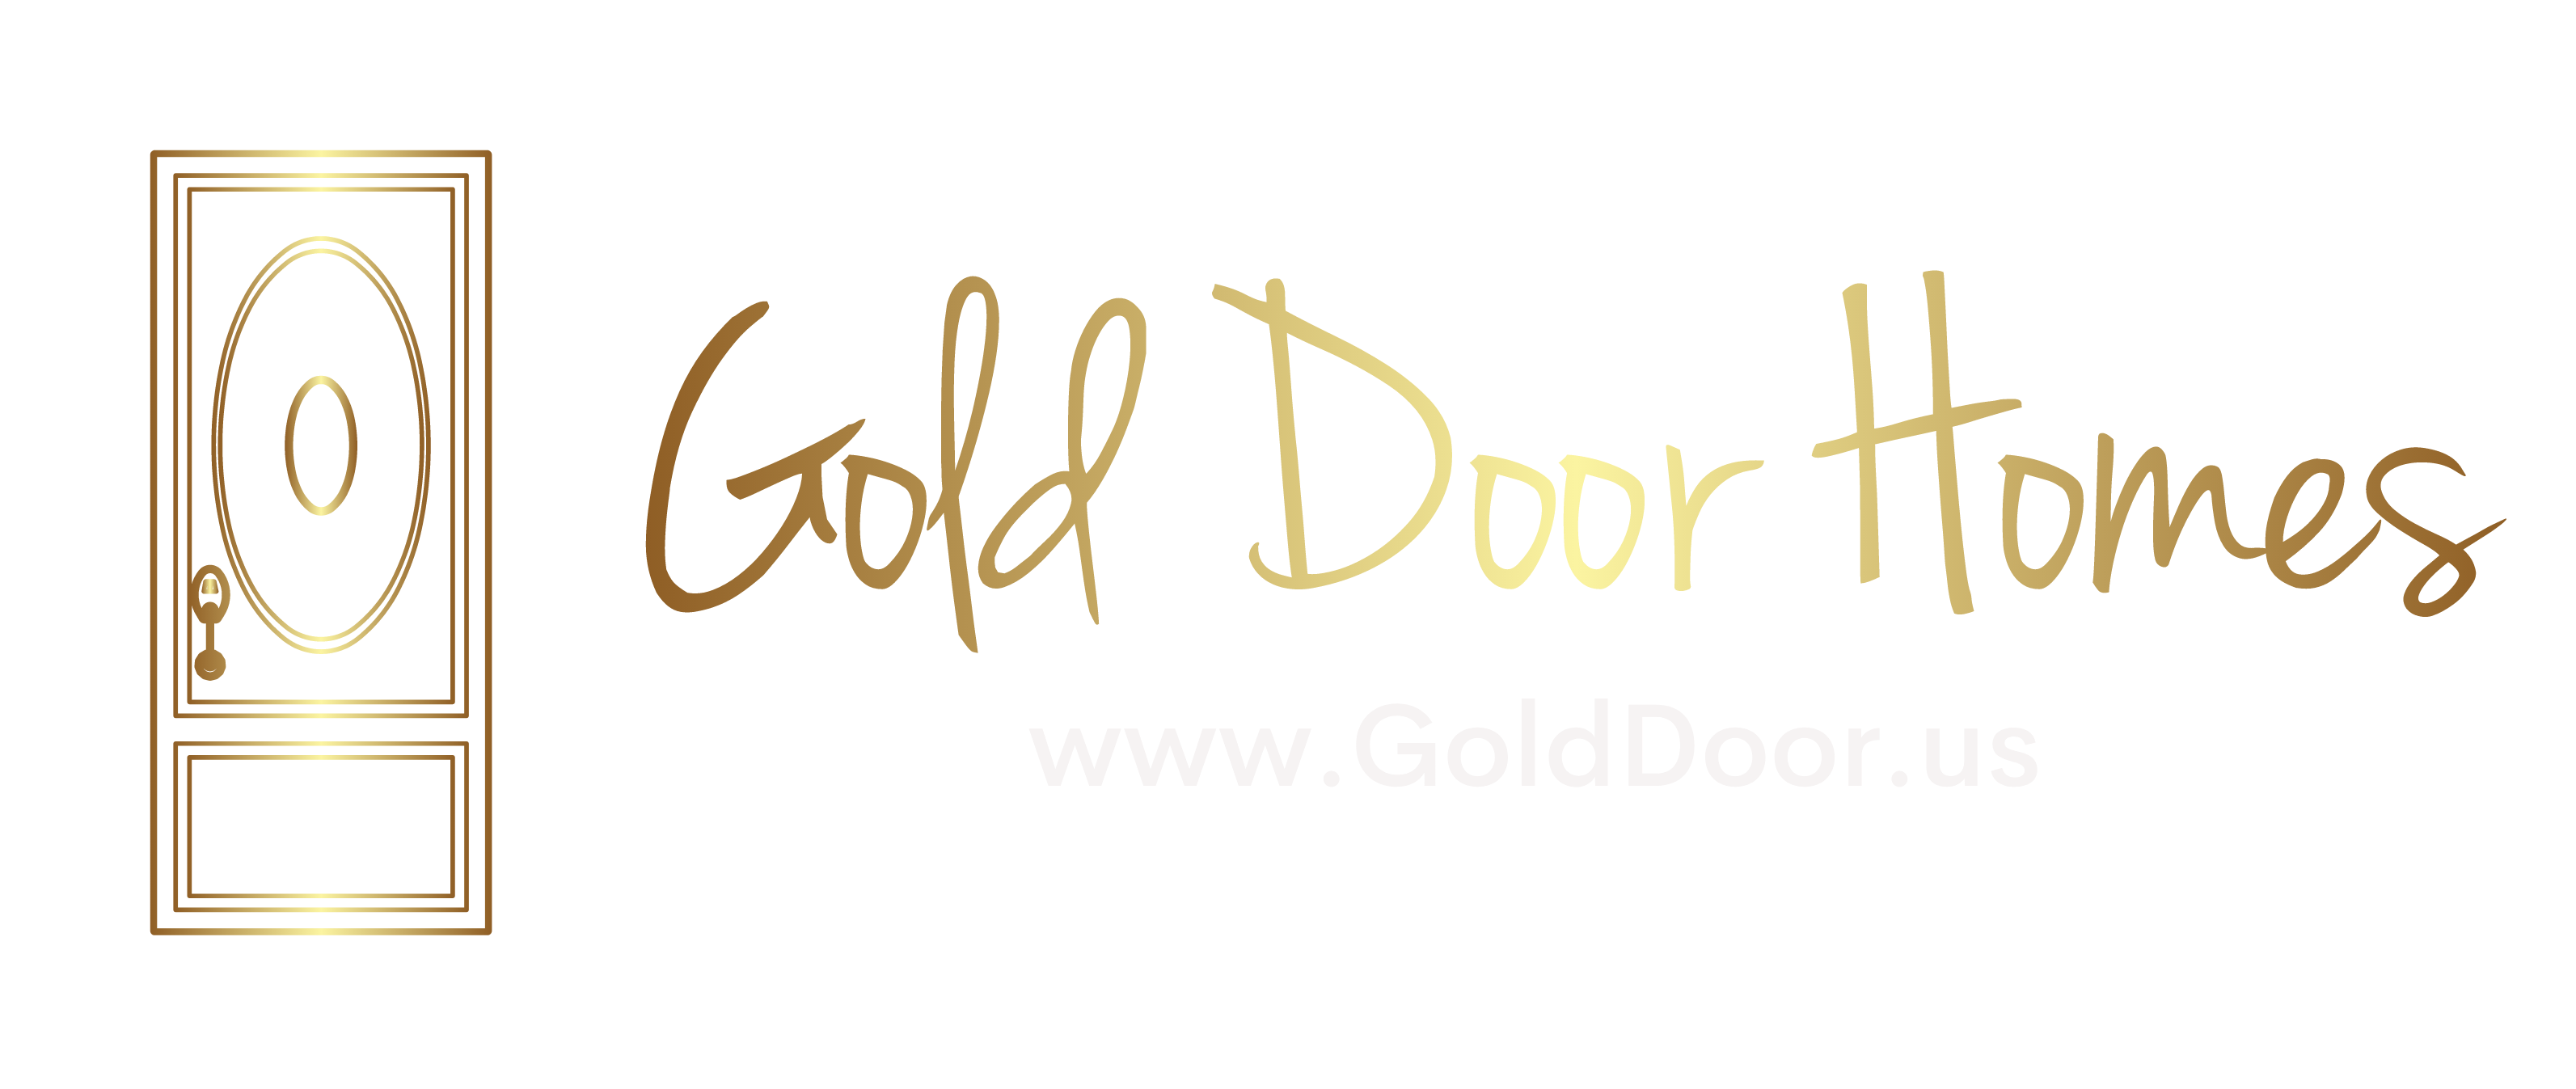 Search For Homes Gold Door Homes